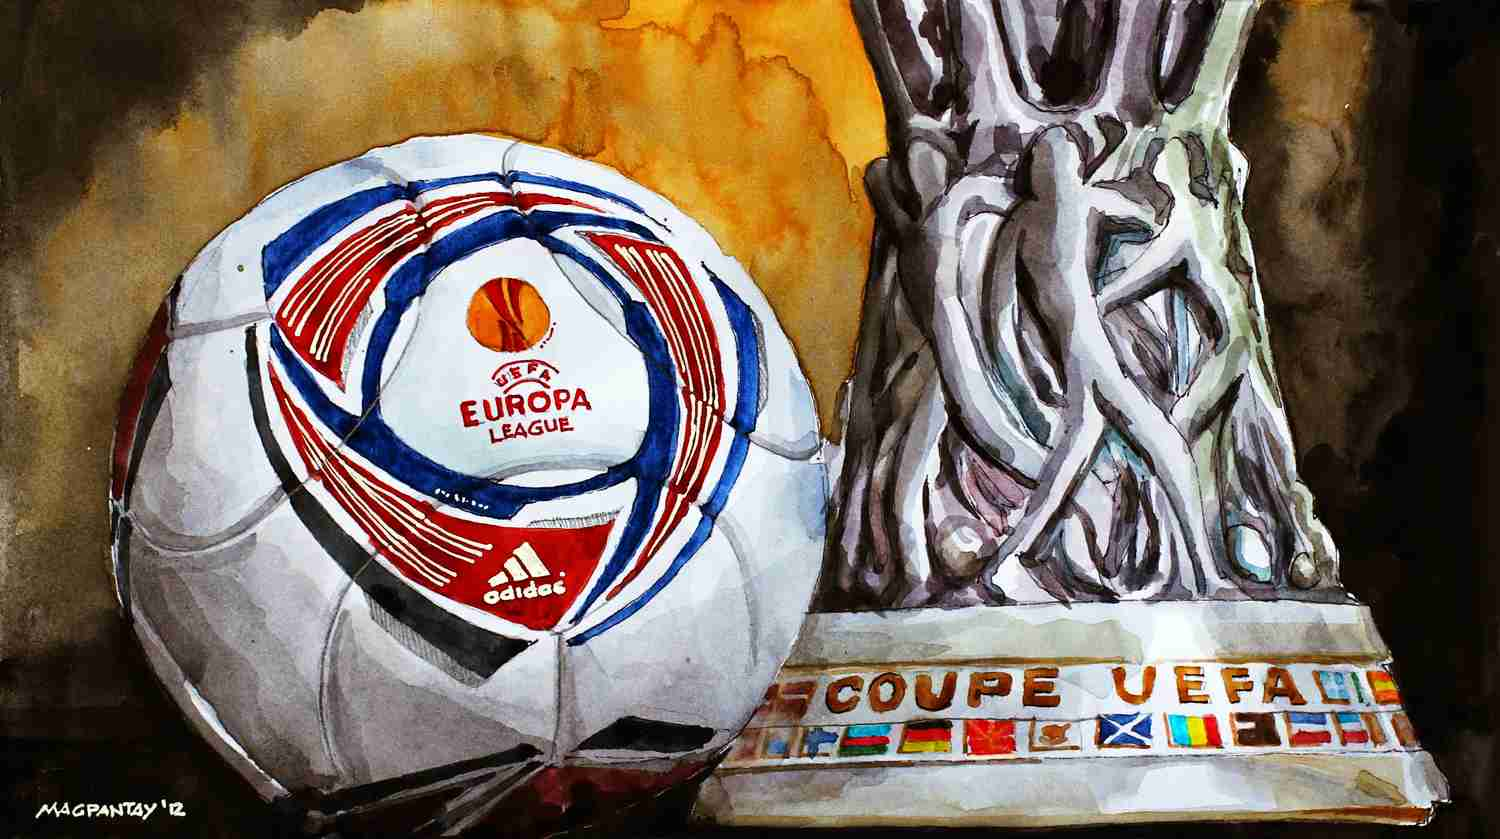 _Europa League Pokal und Ball